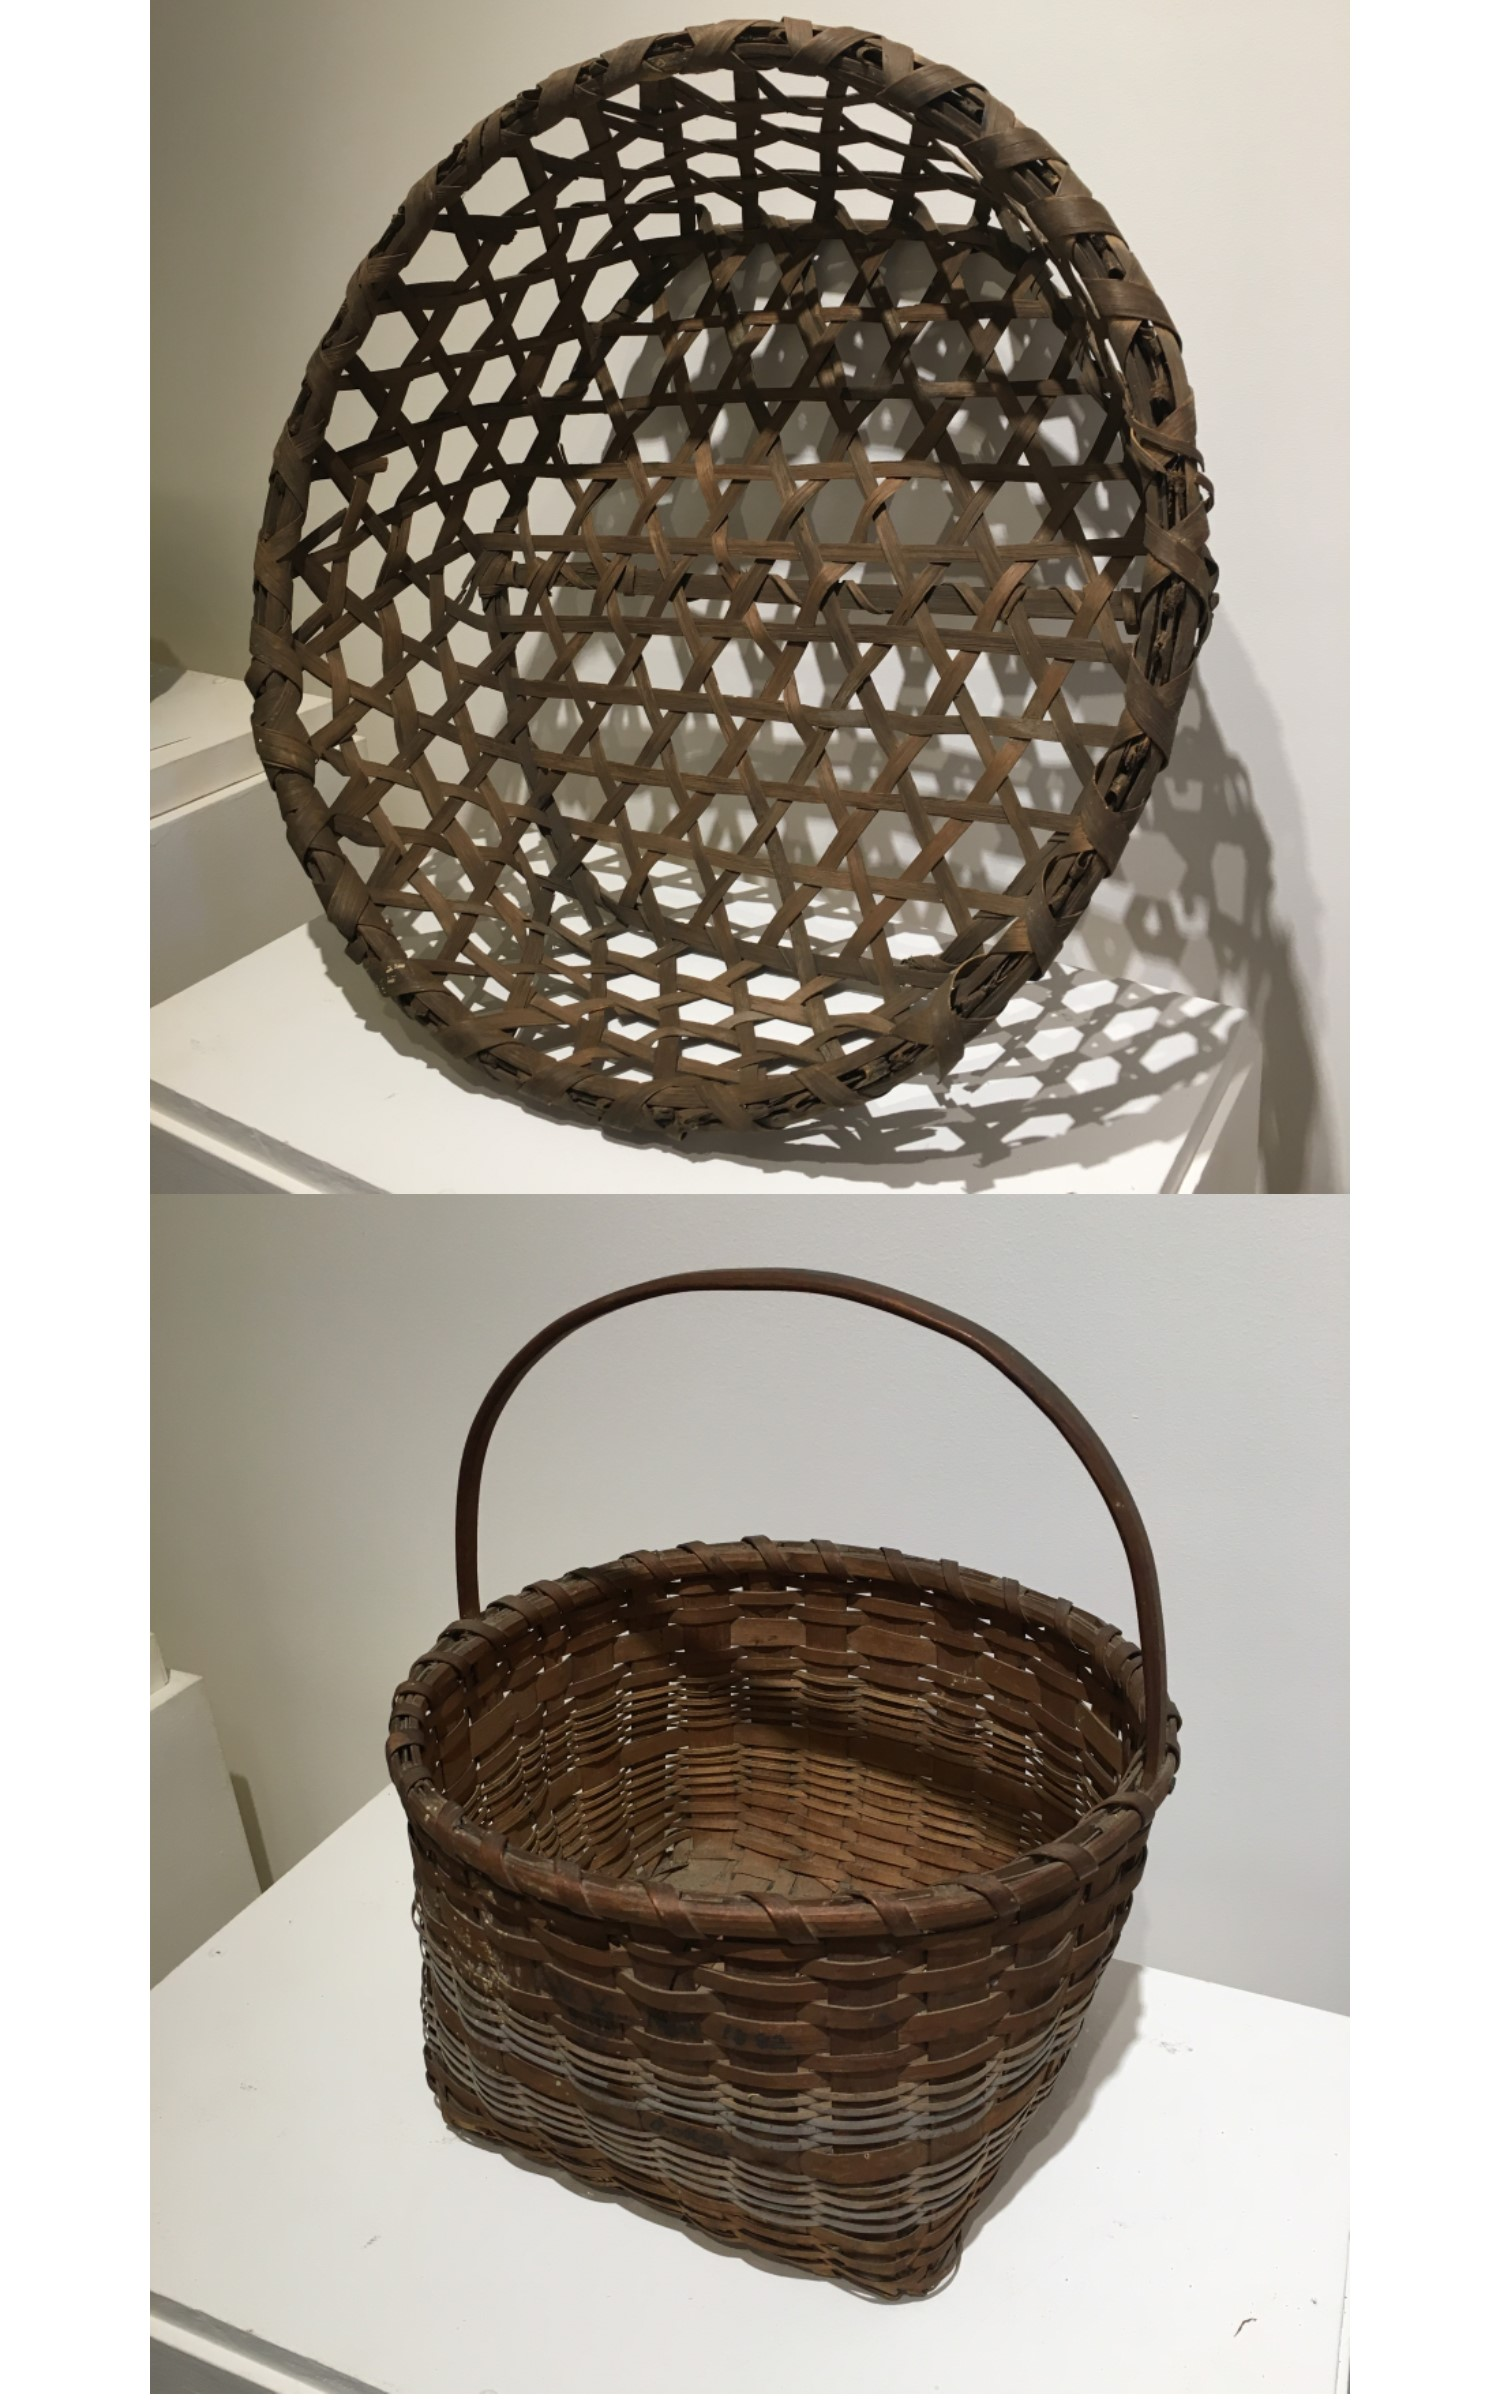 <h3>CHEESE BASKET</em></h3> <br> <p><strong>Oak</strong></p> <p><strong>Ca. 1900</strong></p> <p><strong>Gift of George R. Latham</strong></p> <br> <p>Baskets of this sort were used for making cheese. The pattern is a hexagonal weave. In making cheese, cheesecloth would line the basket and the mixture would drain through both the cloth and the hexagonal openings to a container below.</p> <br> <br> <hr> <br> <br> <h3>GATHERING BASKET</h3> <br> <p><strong>Maple</strong></p> <p><strong>1882</strong></p> <p><strong>Gift in memory of departed loved ones by Douglas and Karin Constant</strong></p> <br> <p>This is one of only two baskets in the exhibition that we know for certain were made in Orient, and it is the only one that is dated. It is signed and dated in black ink: W Young / Mar 1882 / Orient / L. I. and below that are the initials (probably the owner's): P.M.Y. The basket is woven with splints of maple and has a decoration of two bands of narrower maple splints painted in a contrasting color.</p>